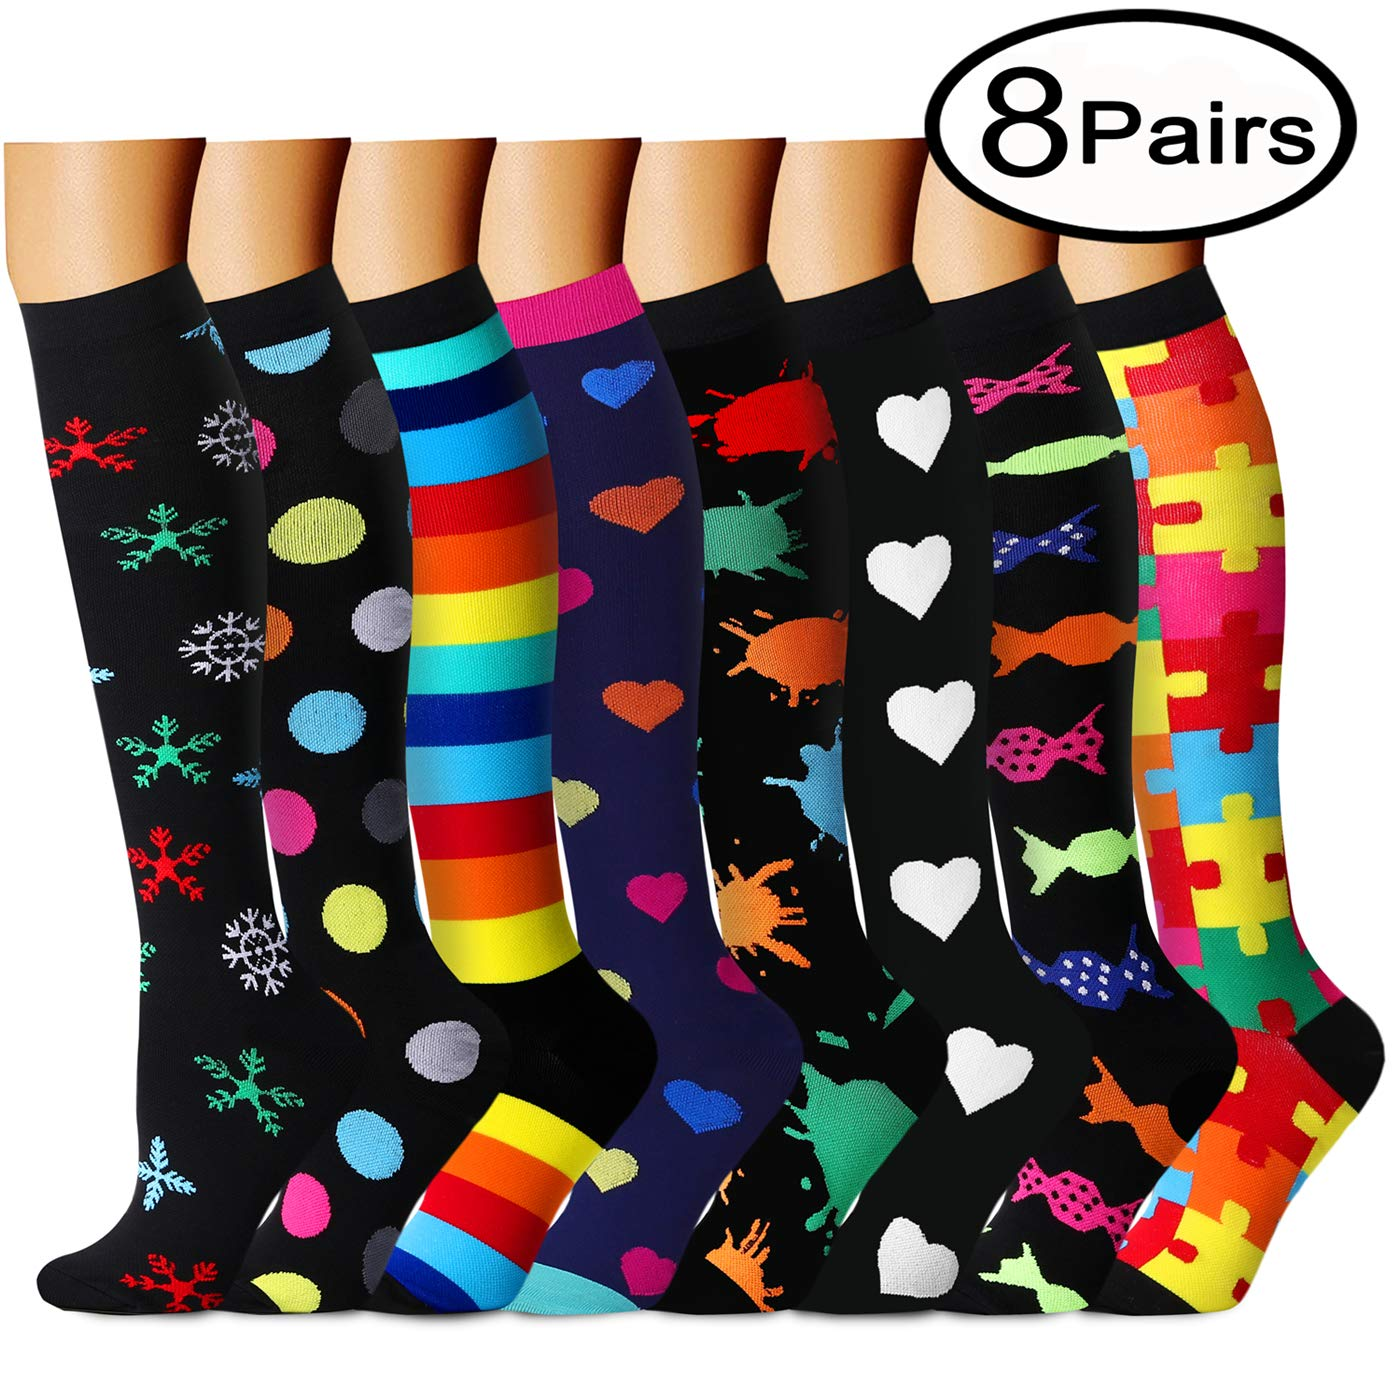 QUXIANG Copper Compression Socks for Women and Men - Best Medical, Nursing, Running, Athletic, Edema, Diabetic, Varicose Veins, Travel, Pregnancy & Maternity 15-20 mmHg (Small/Medium, Multicolour 19)